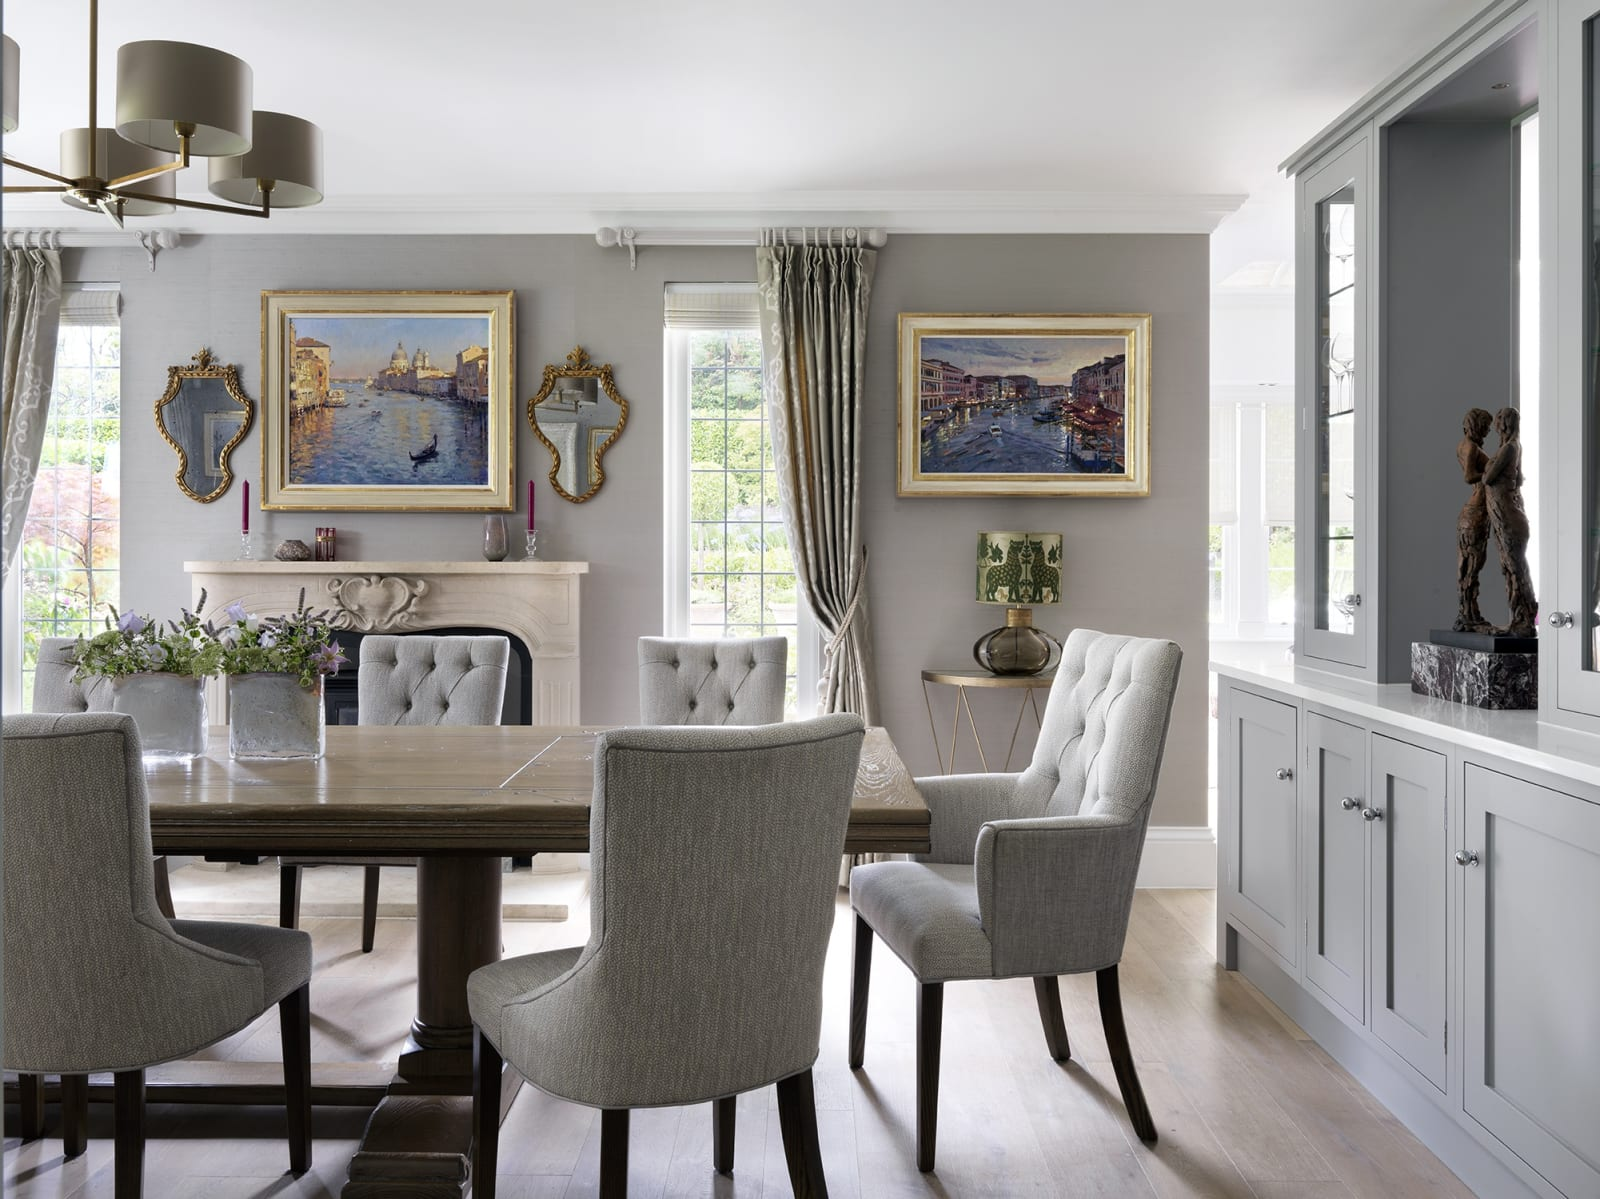 Contemporary Venetian paintings sit well in this neutral dining room scheme